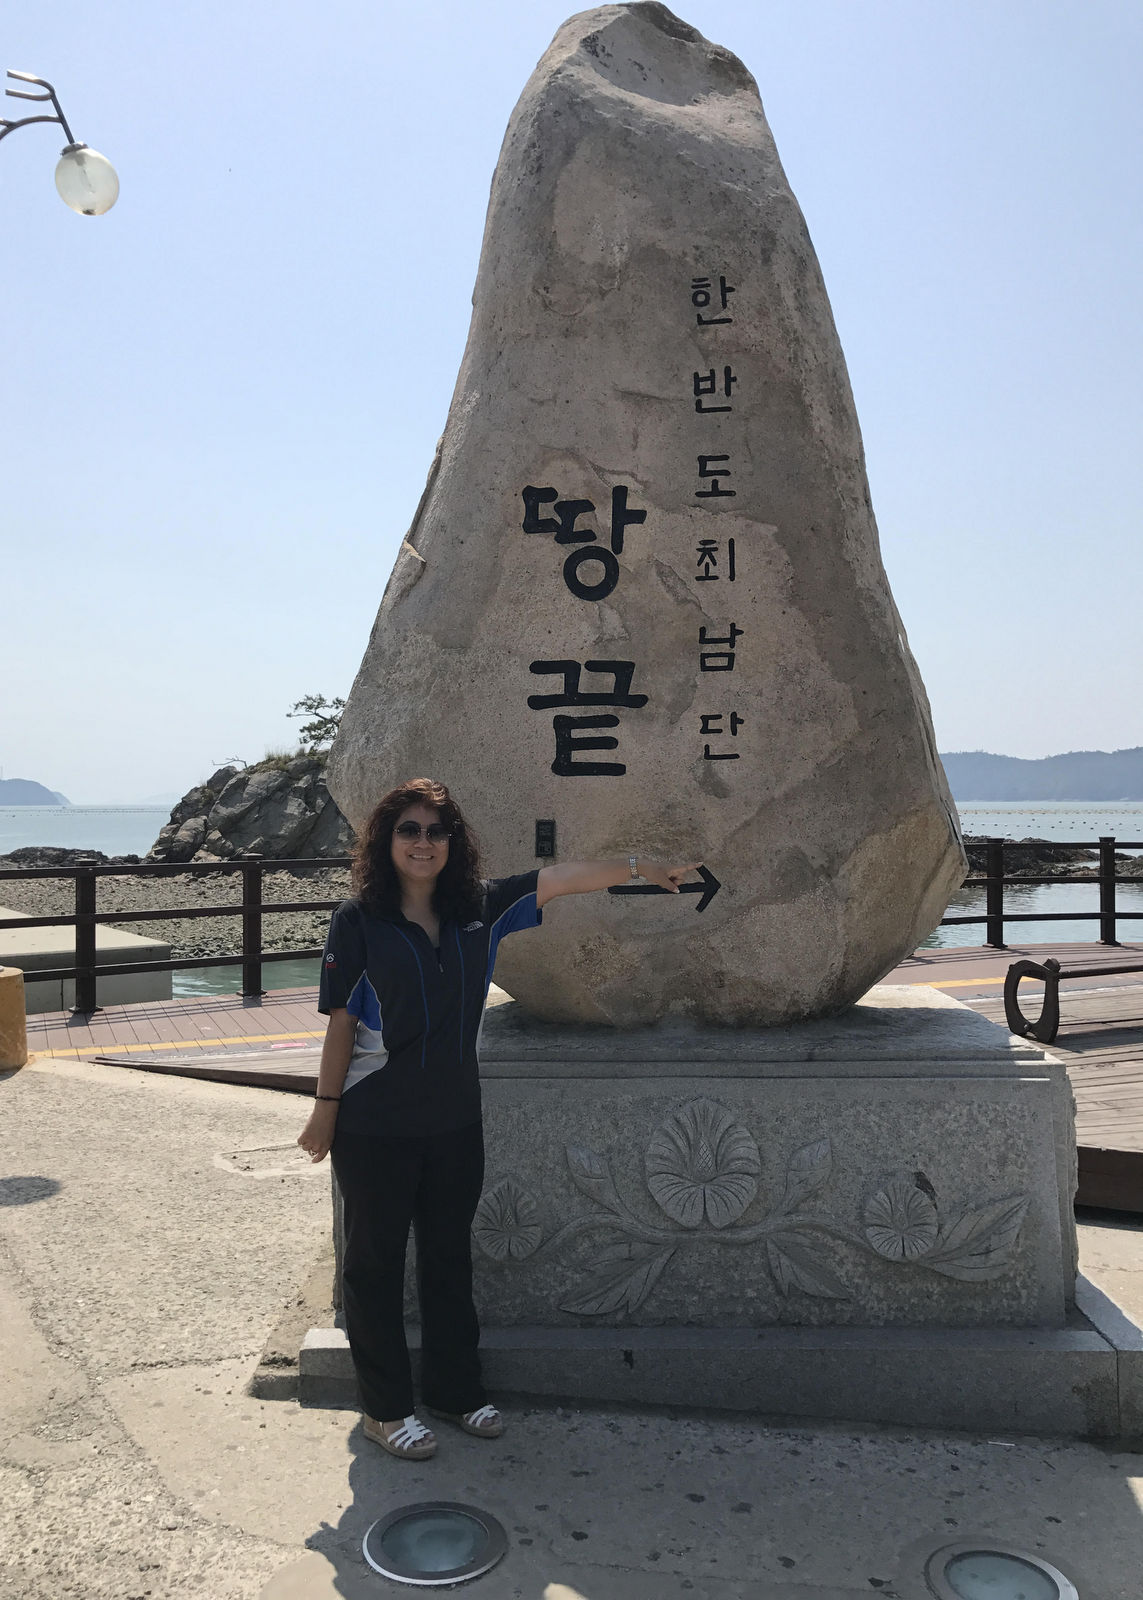 Prof. Luangphinith stands at a large stone marker with Lorean calligraphy. The sea is in the background.